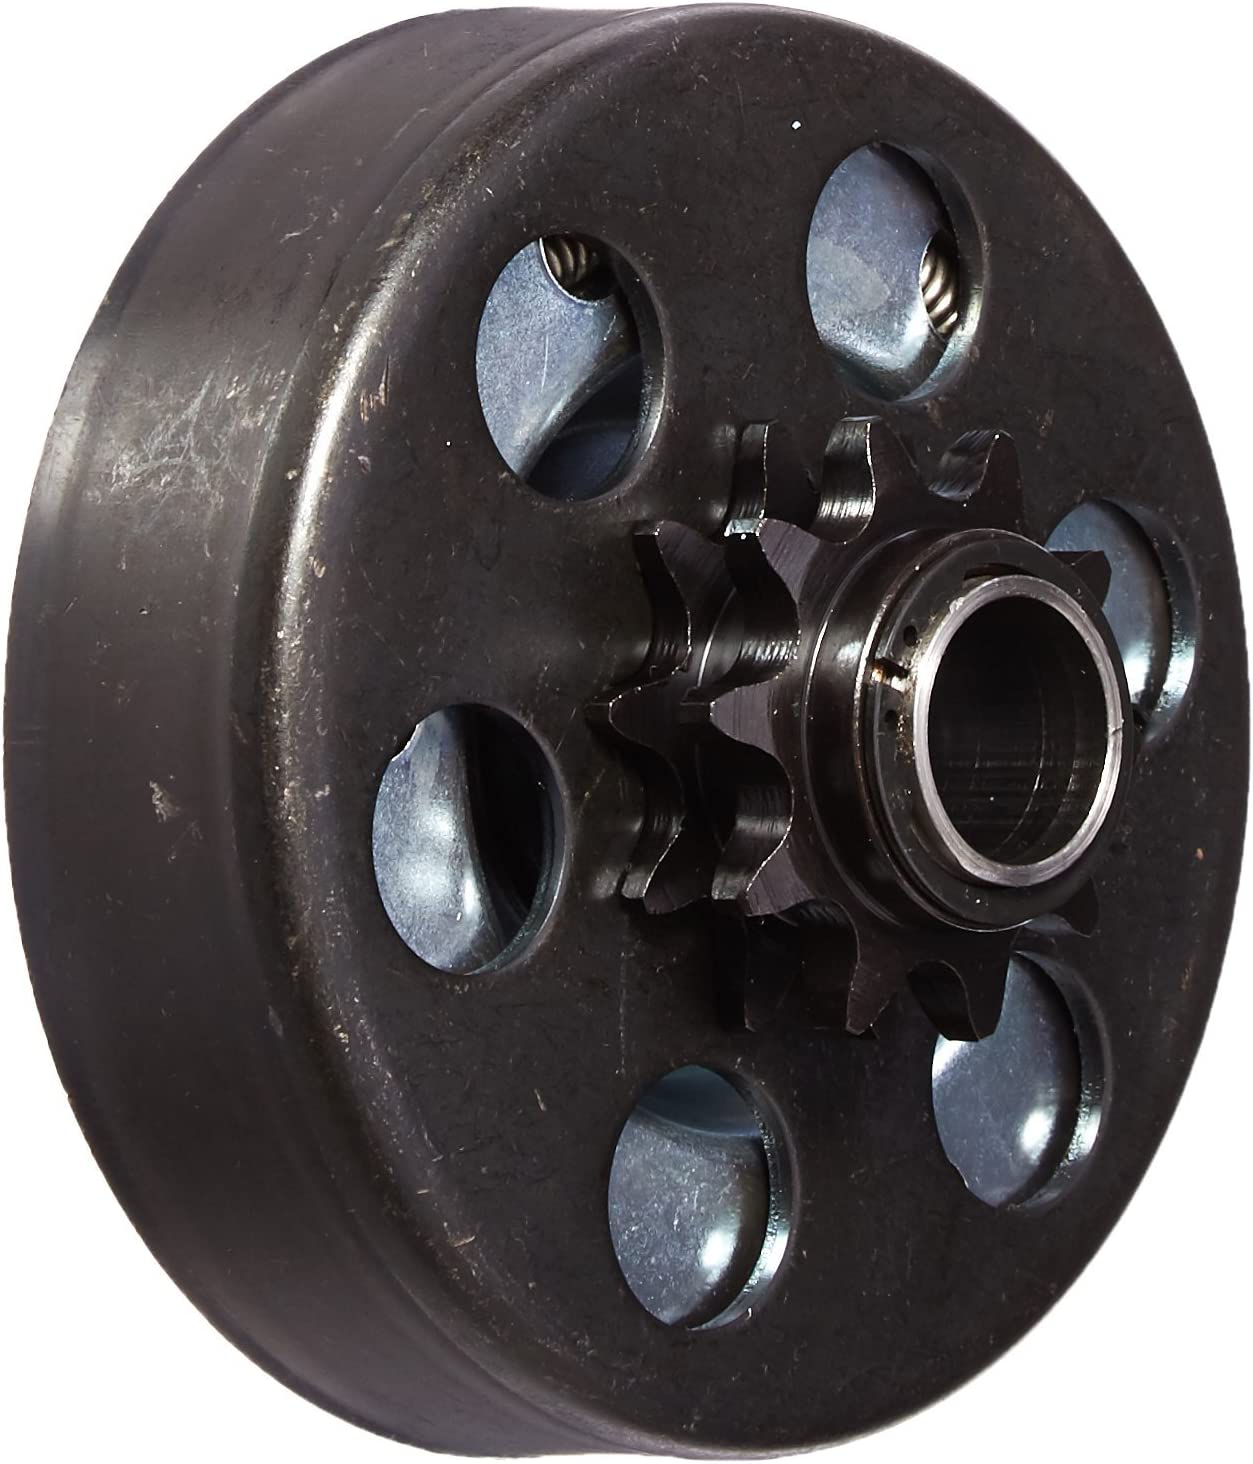 Amazon.com: Maxpower 457 Max clutch de torque: Jardín y ...